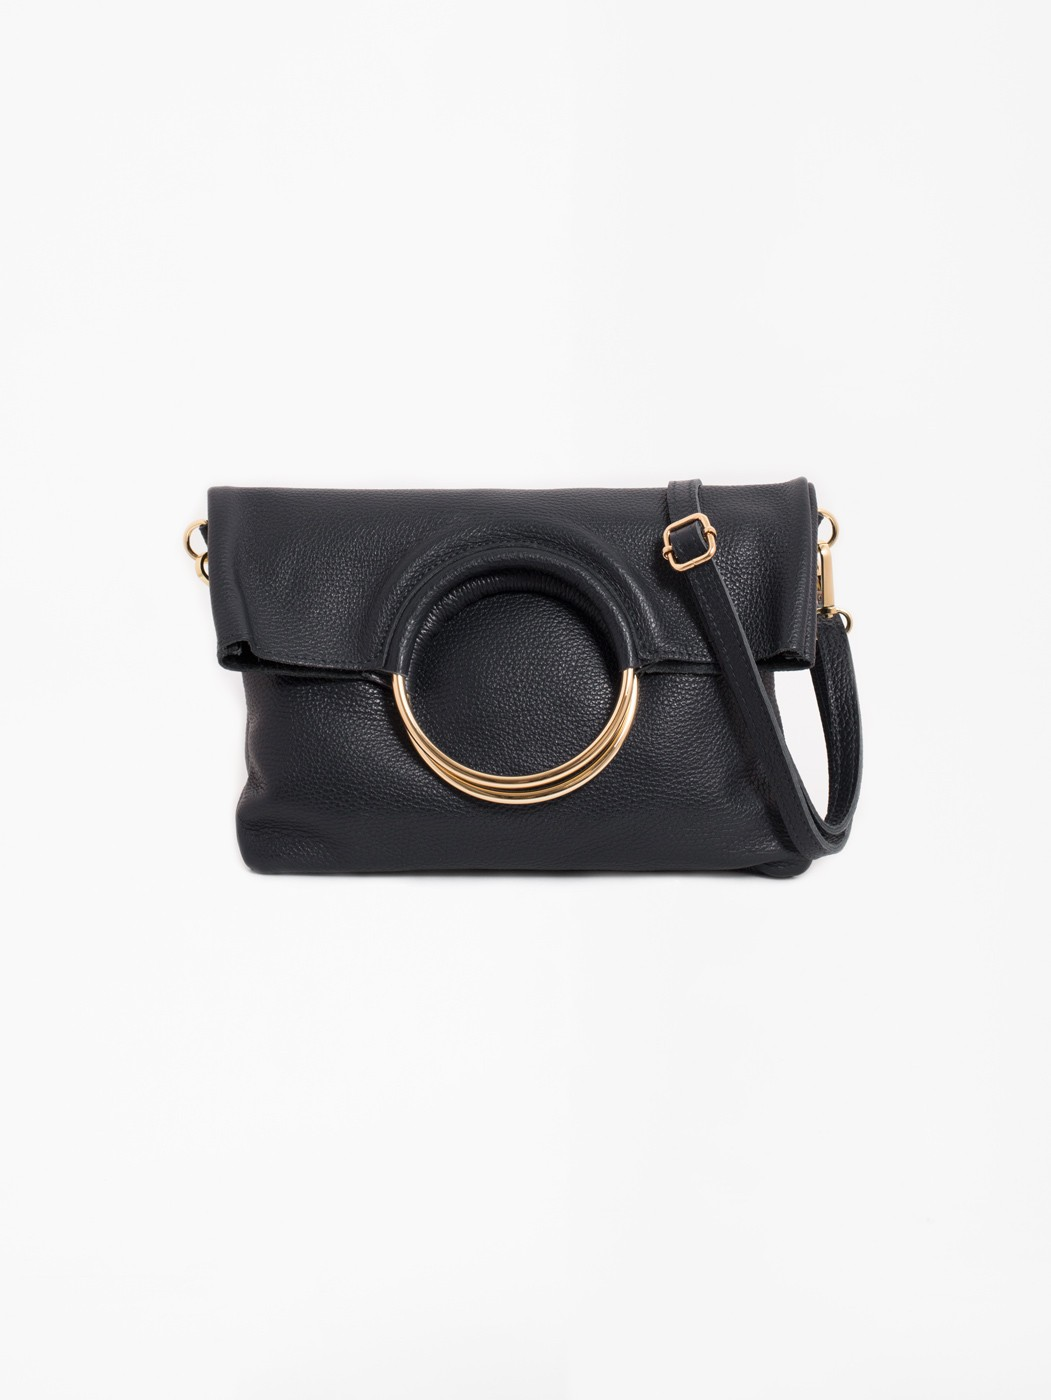 BECK BLACK LEATHER BAG